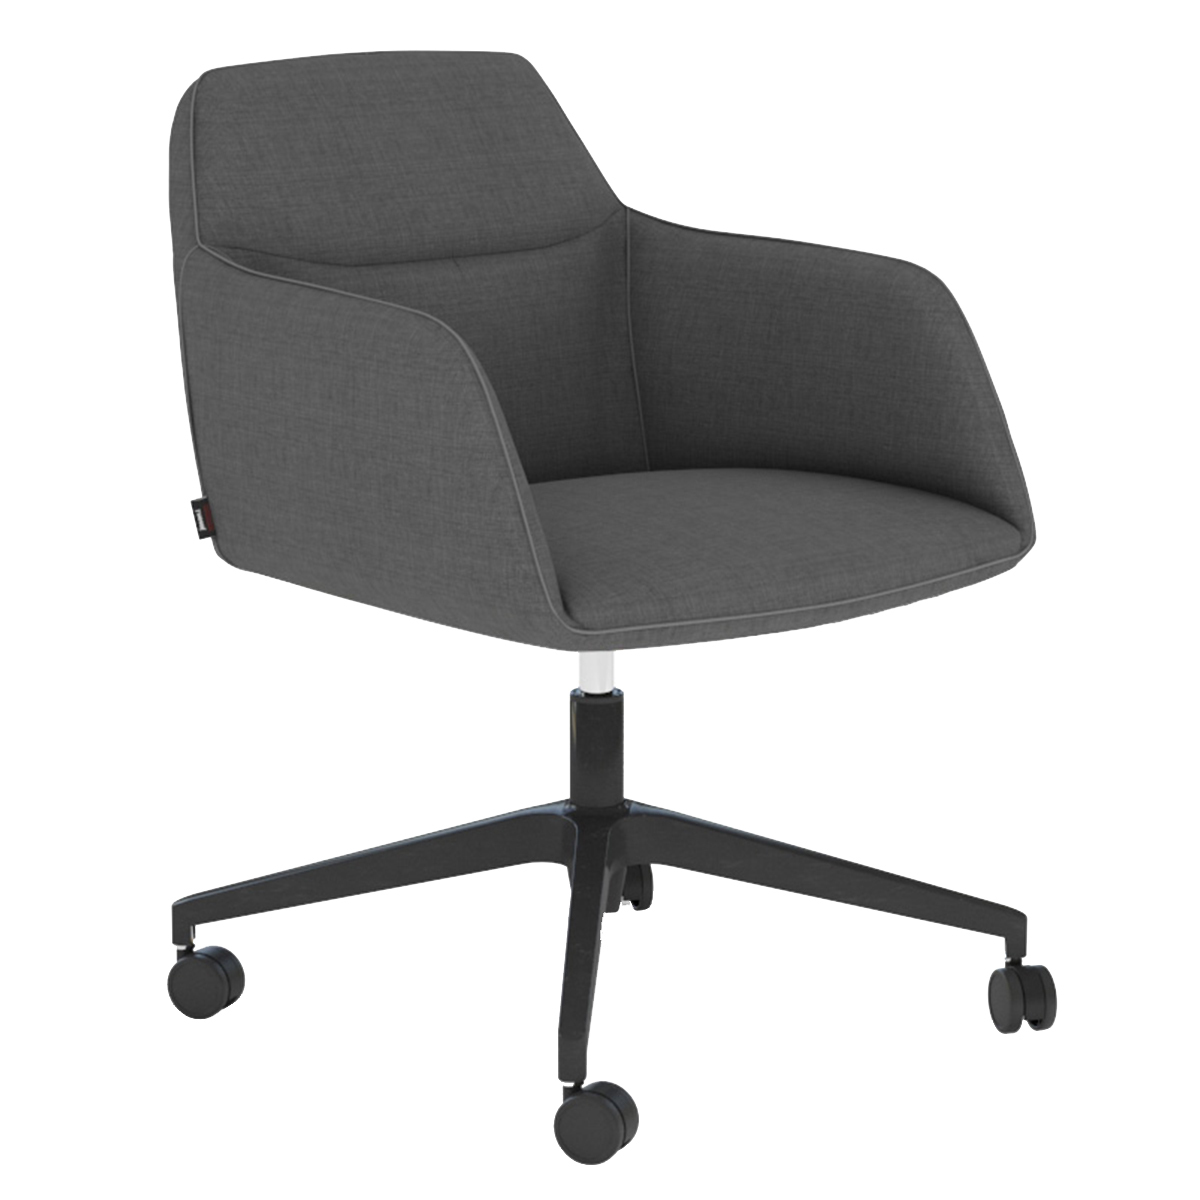 Image of: Haywood Swivel Base Upholstered Office Chair Temple Webster